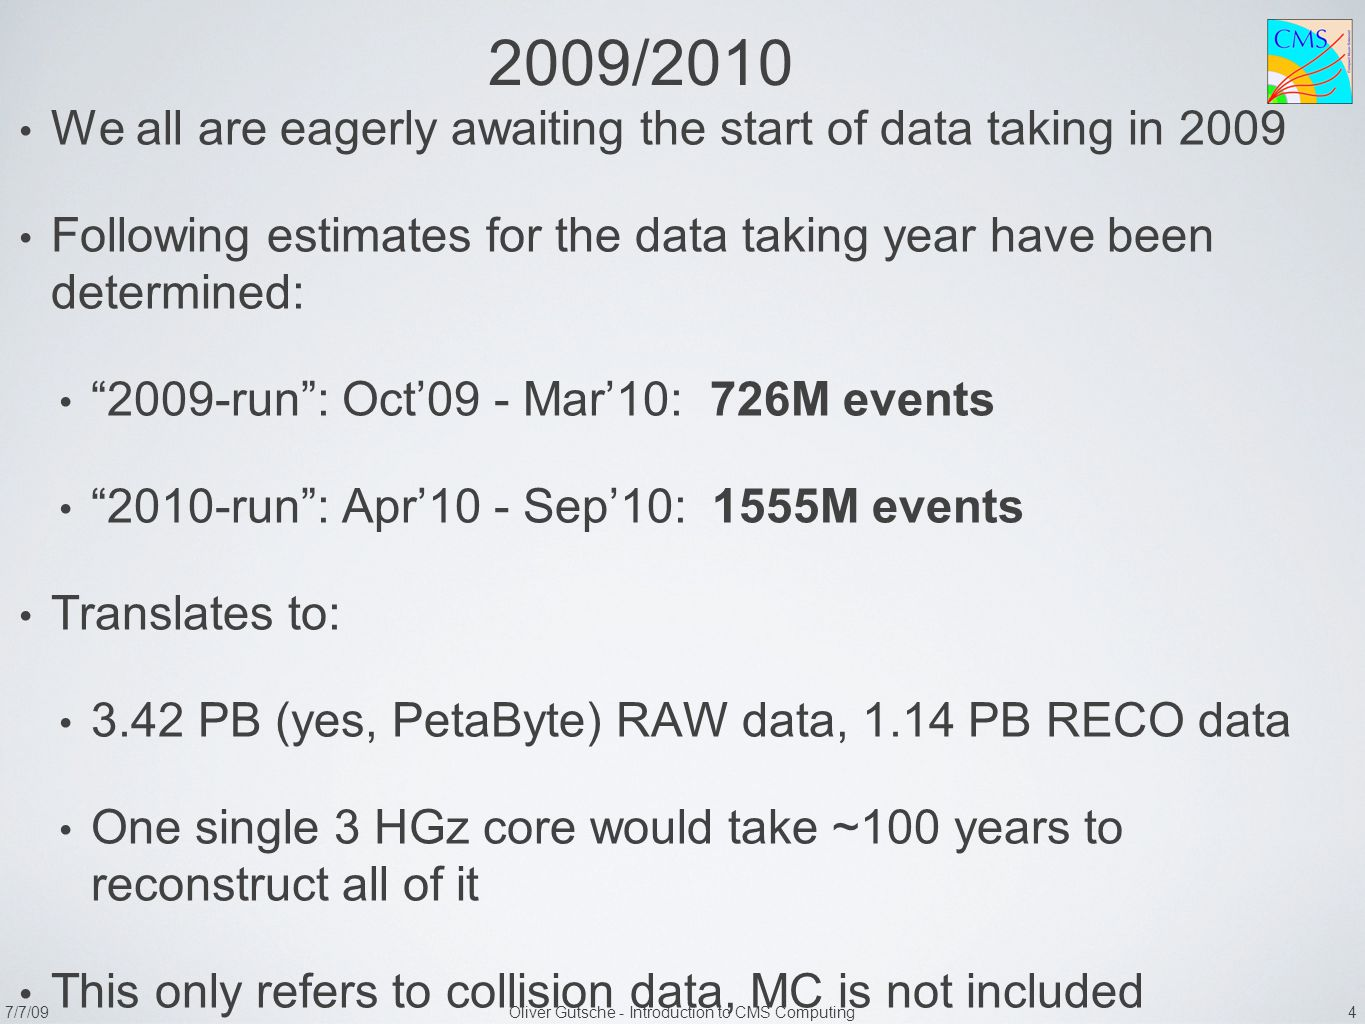 7/7/09Oliver Gutsche - Introduction to CMS Computing 4 2009/2010 We all are eagerly awaiting the start of data taking in 2009 Following estimates for the data taking year have been determined: 2009-run : Oct'09 - Mar'10: 726M events 2010-run : Apr'10 - Sep'10: 1555M events Translates to: 3.42 PB (yes, PetaByte) RAW data, 1.14 PB RECO data One single 3 HGz core would take ~100 years to reconstruct all of it This only refers to collision data, MC is not included